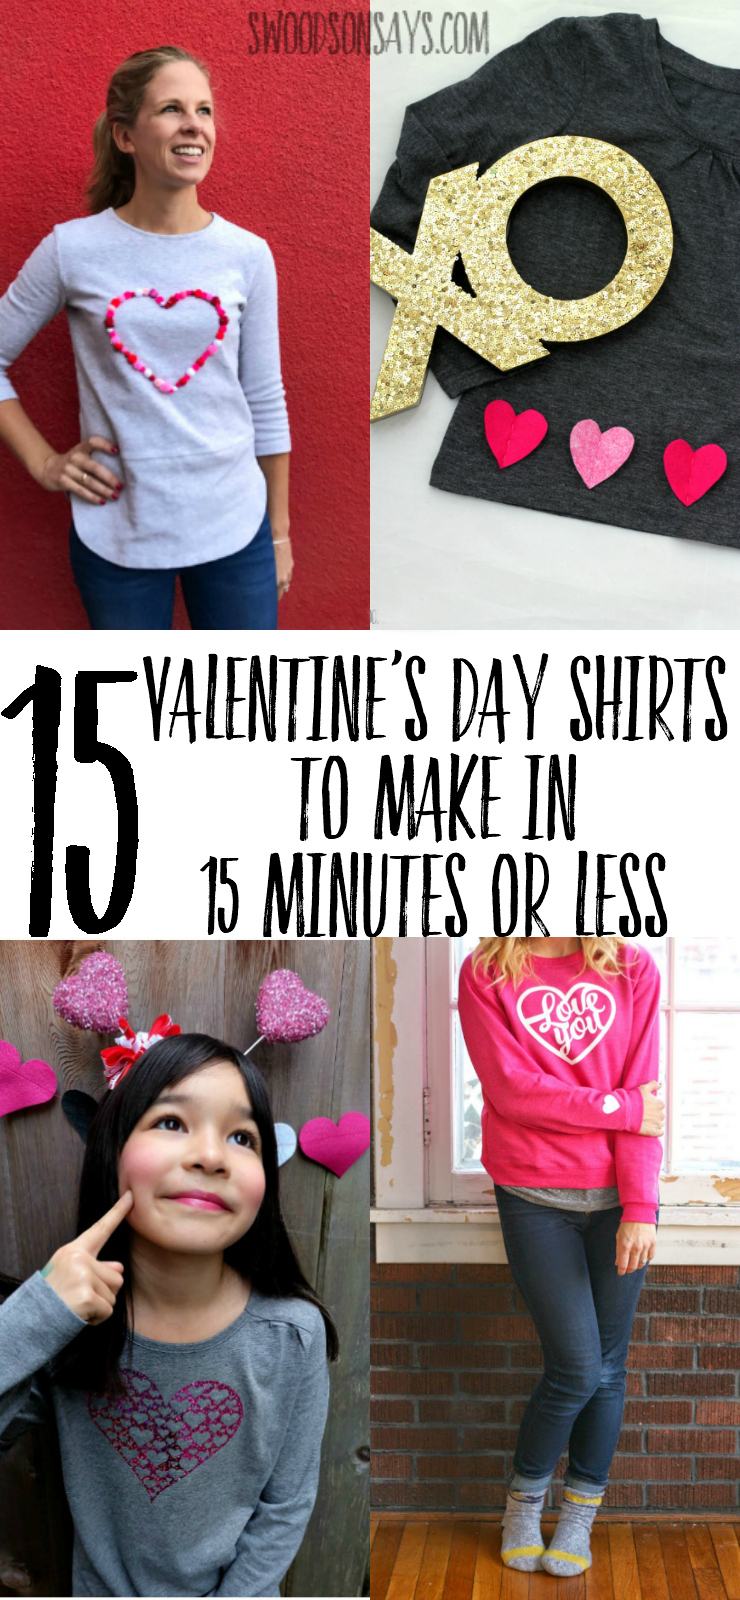 Get crafty with one of these creative DIY Valentine's Day shirts! Fun and fast tutorials that will be perfect for the holiday of love. All sorts of Valentine's Day crafts to make a unique shirt.